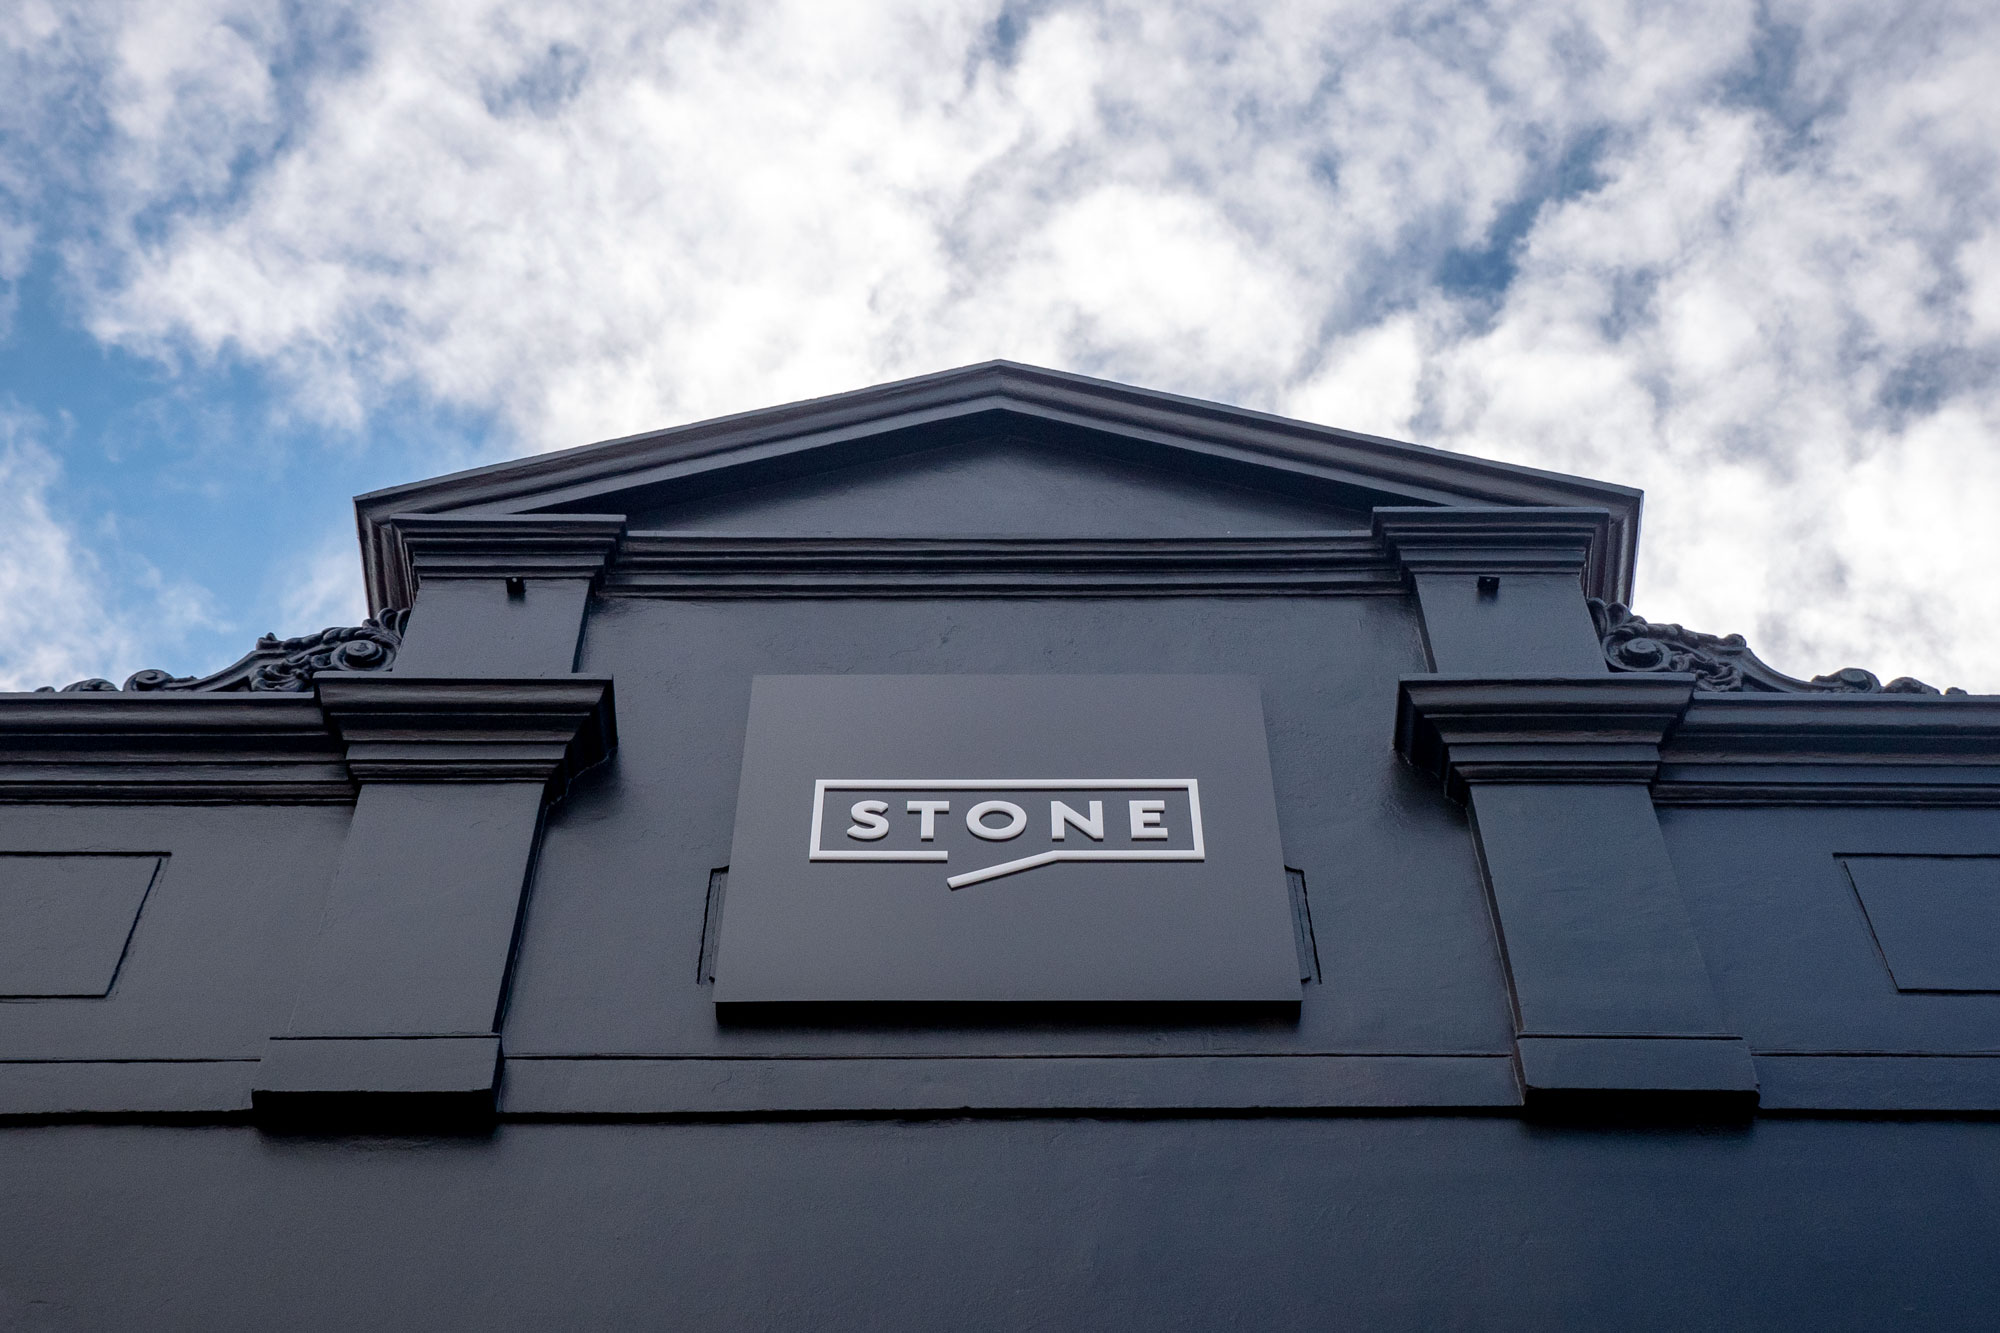 Stone Real Estate Illawarra - Building Sign